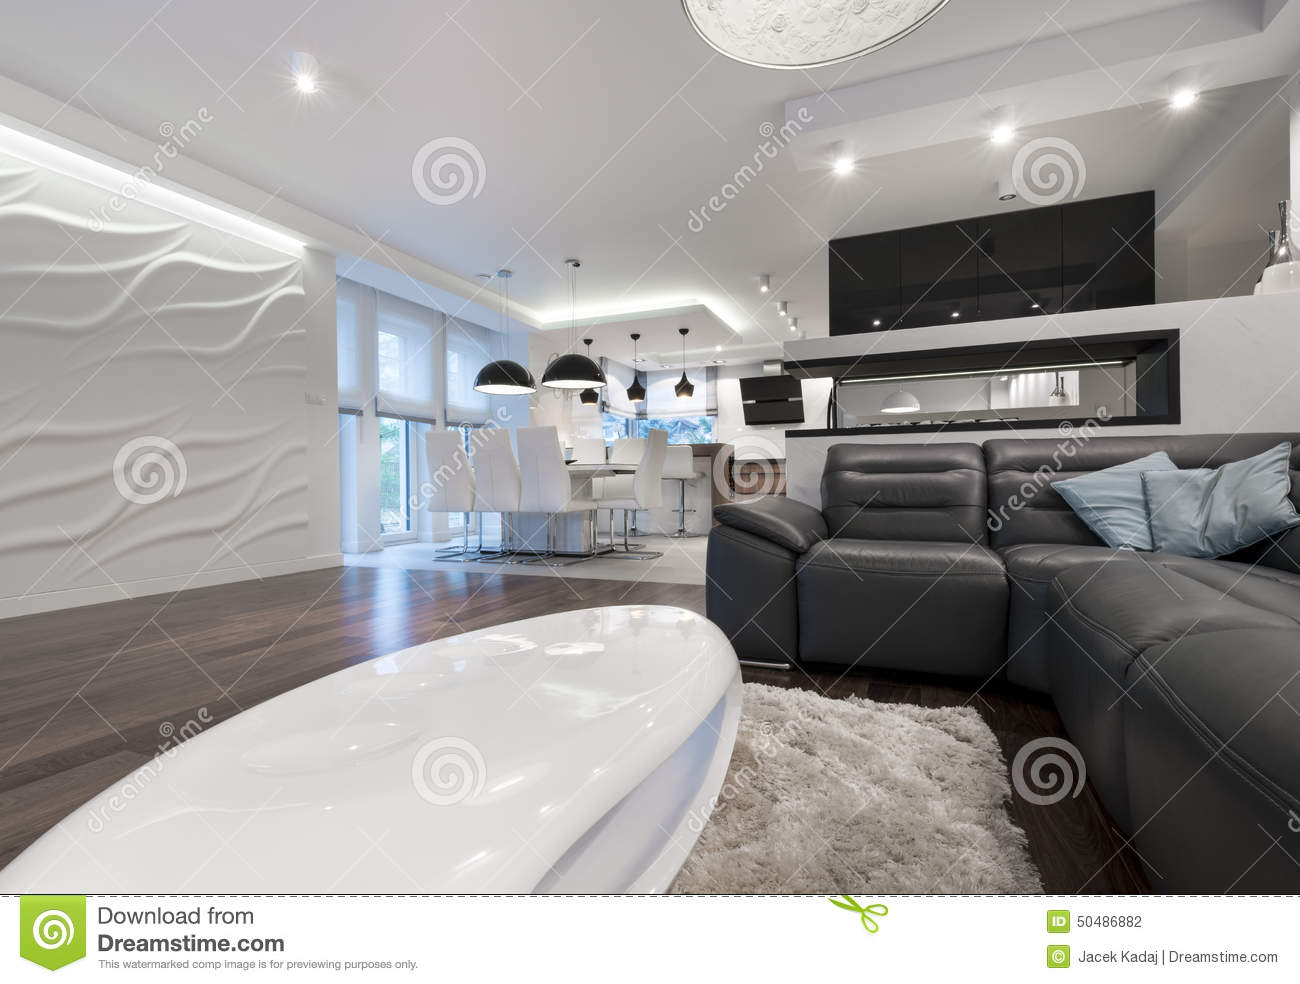 Royalty Free Stock Photo Download Modern Interior Design